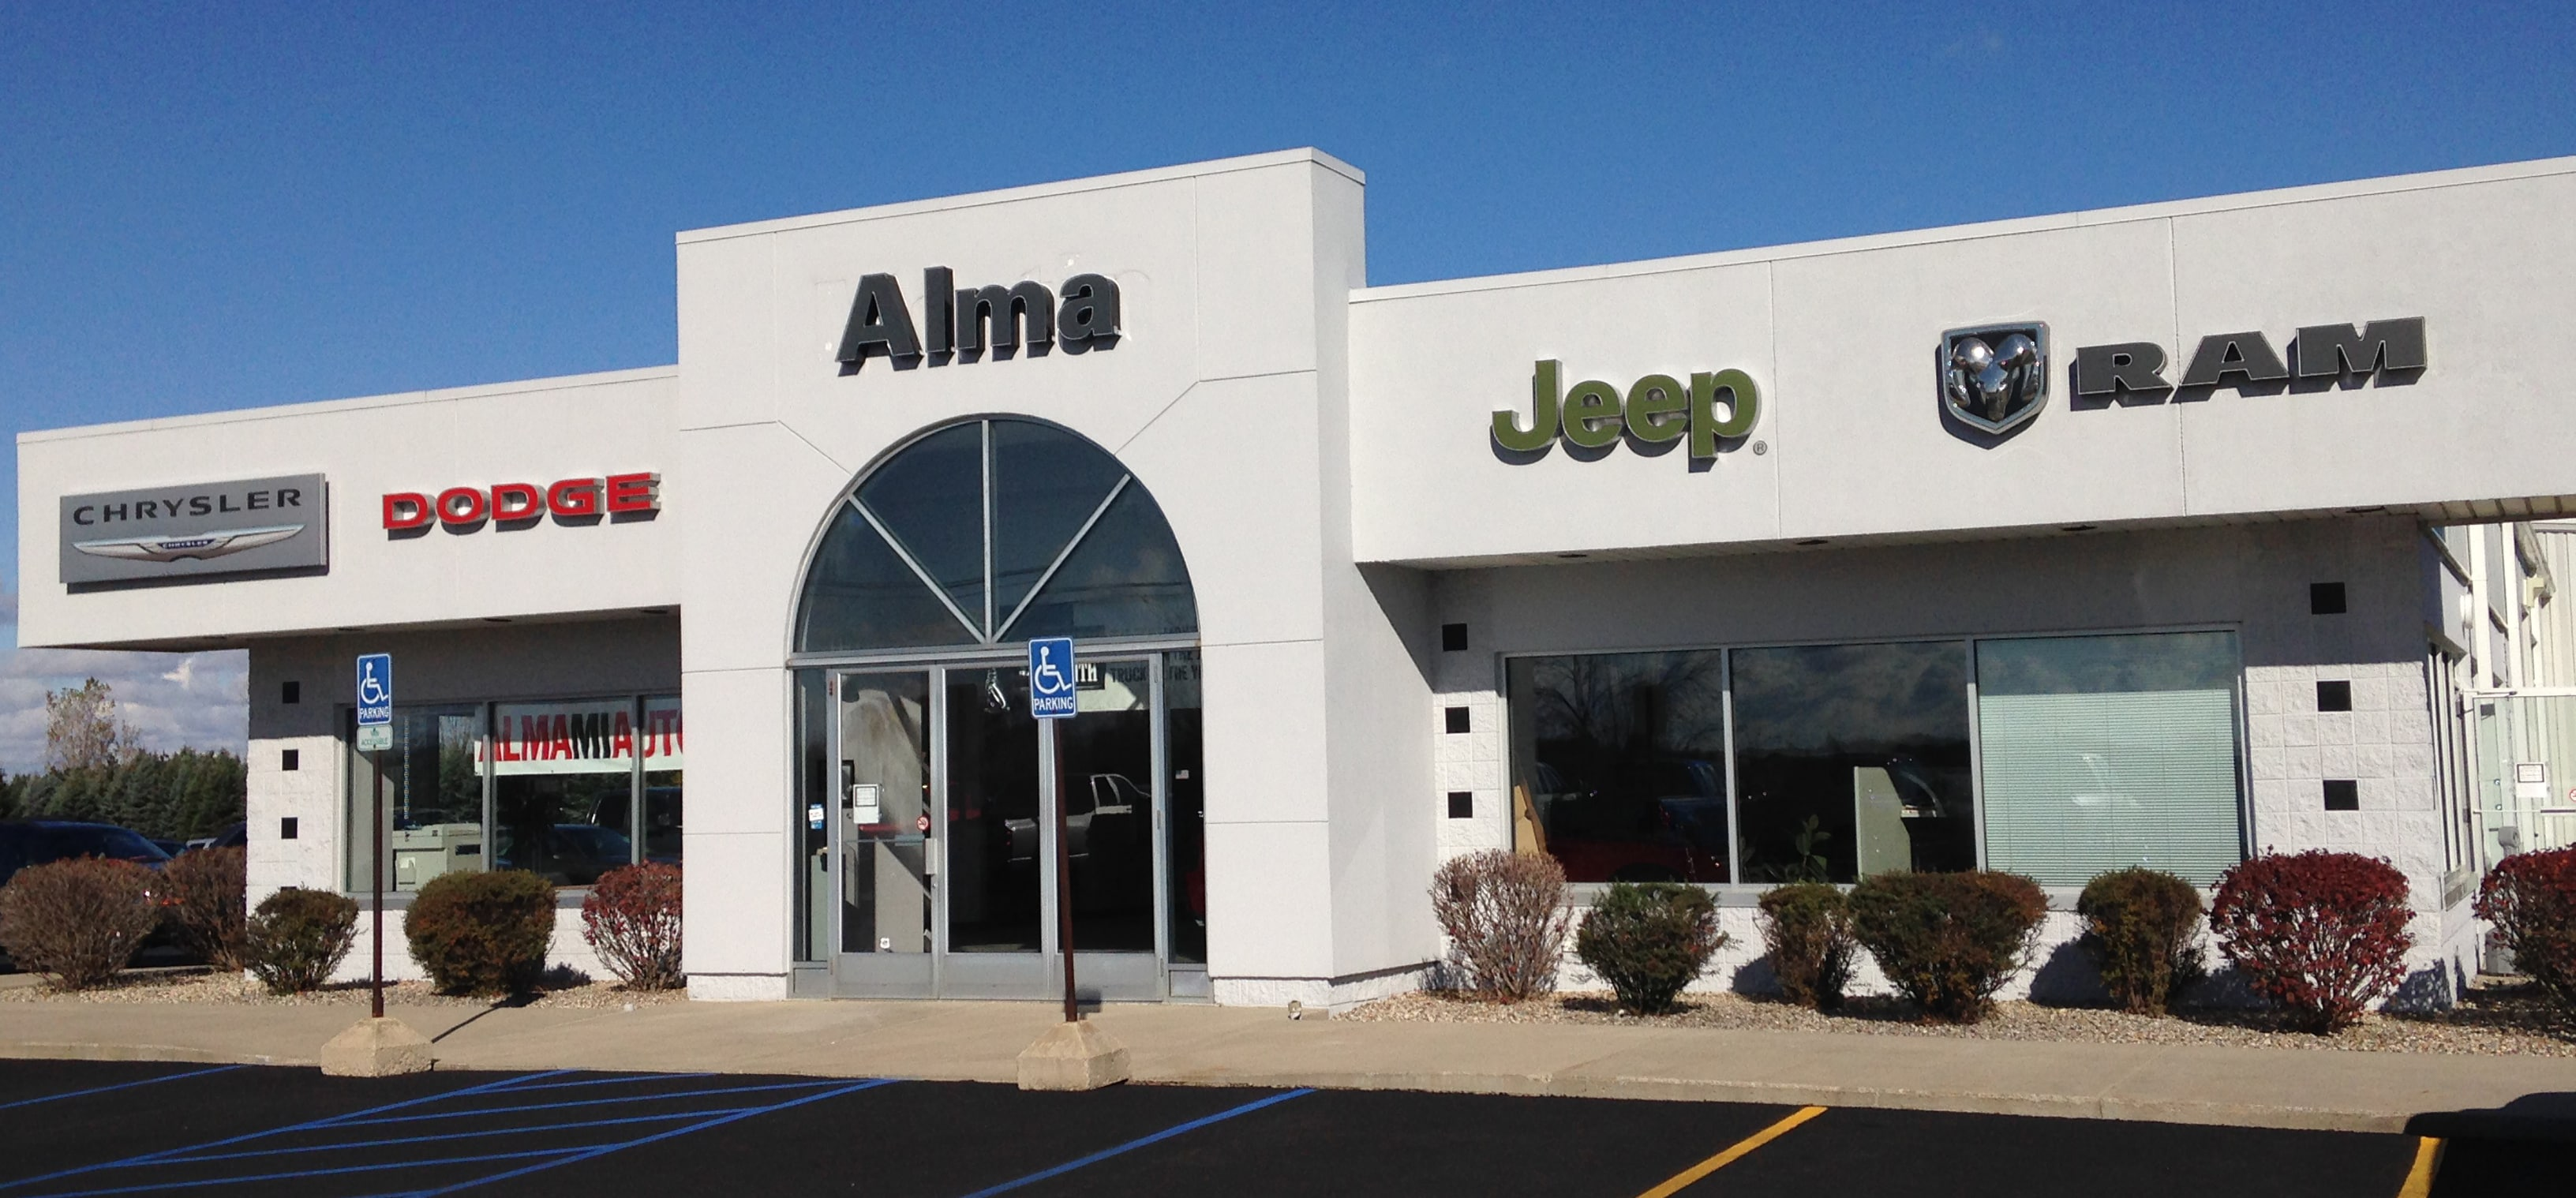 about alma chrysler jeep dodge ram new used car dealer in mid michigan. Black Bedroom Furniture Sets. Home Design Ideas